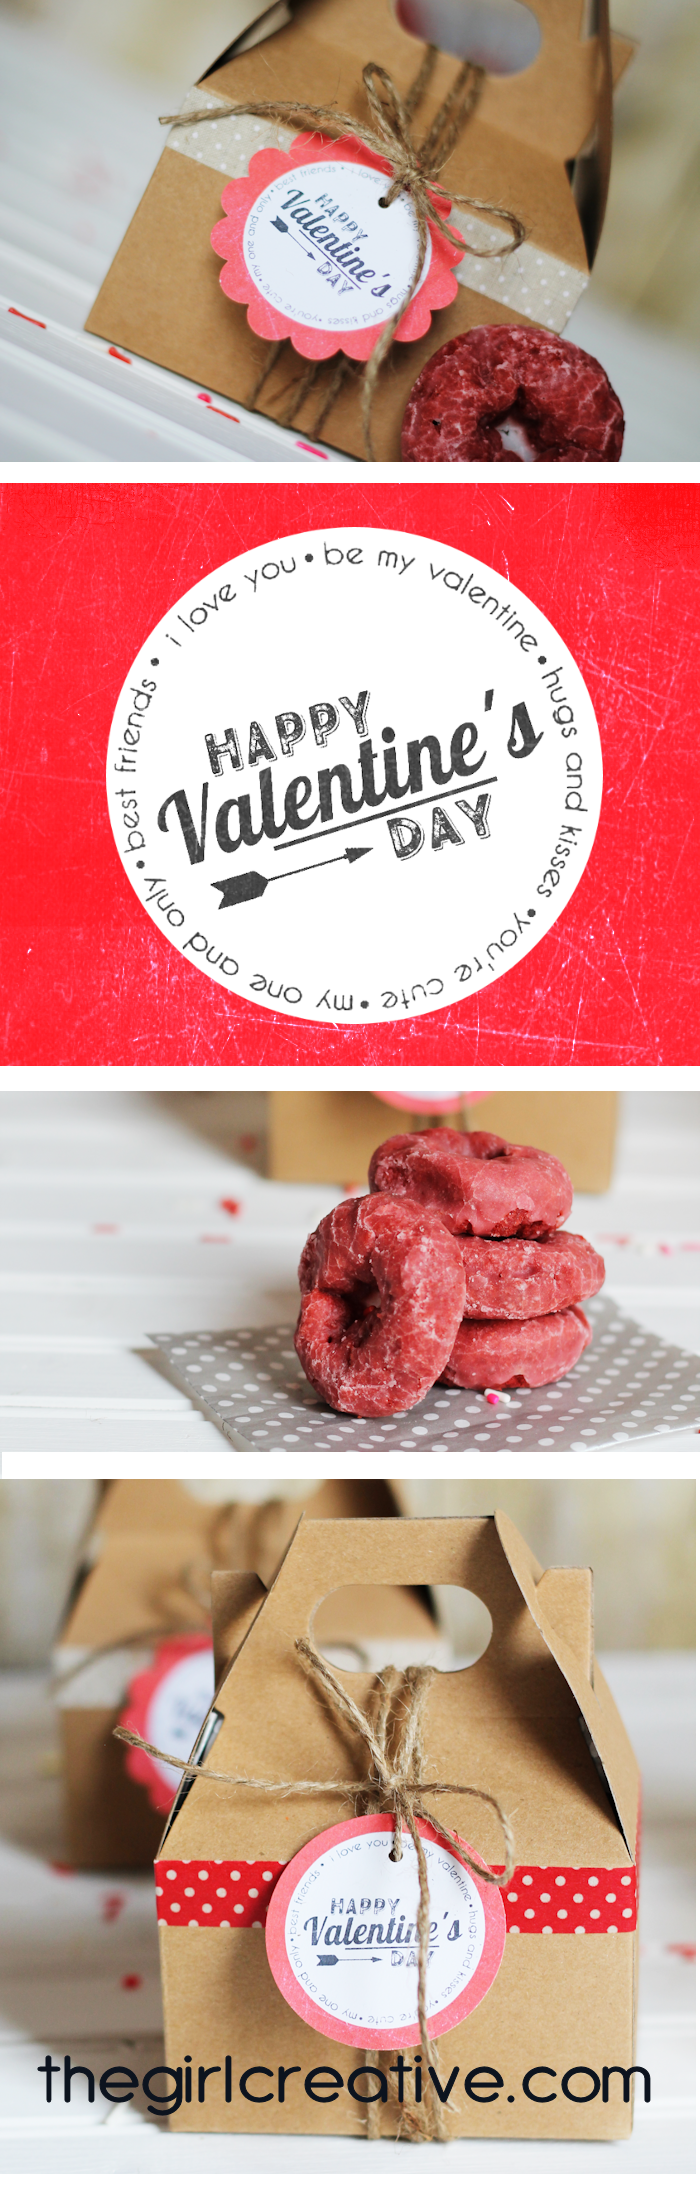 Delicious Red Velvet Valentine's Day Donuts all wrapped up in a cute box with free printable Vintage Valentine's Day Tags